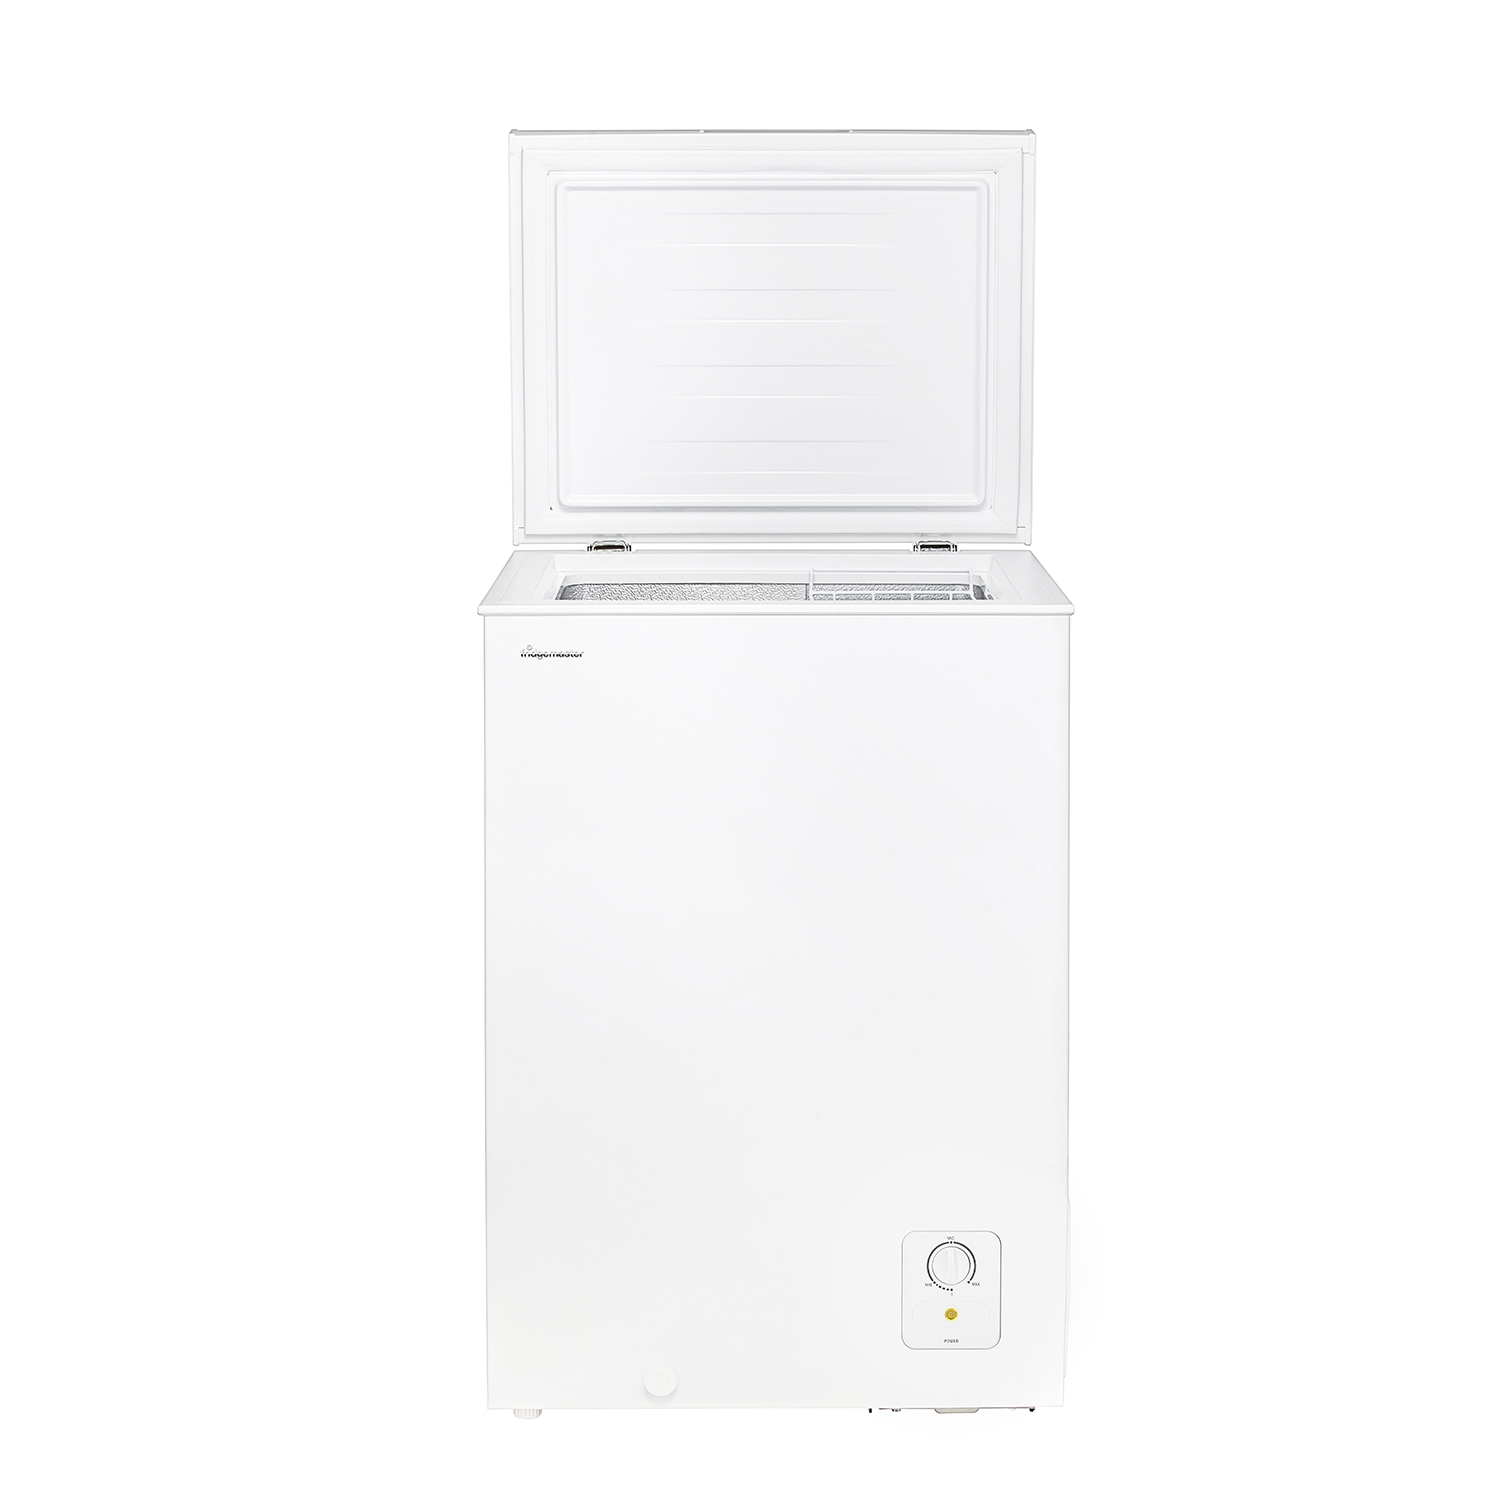 Fridgemaster 55cm Static Chest Freezer - White - A+ Energy Rated - 0